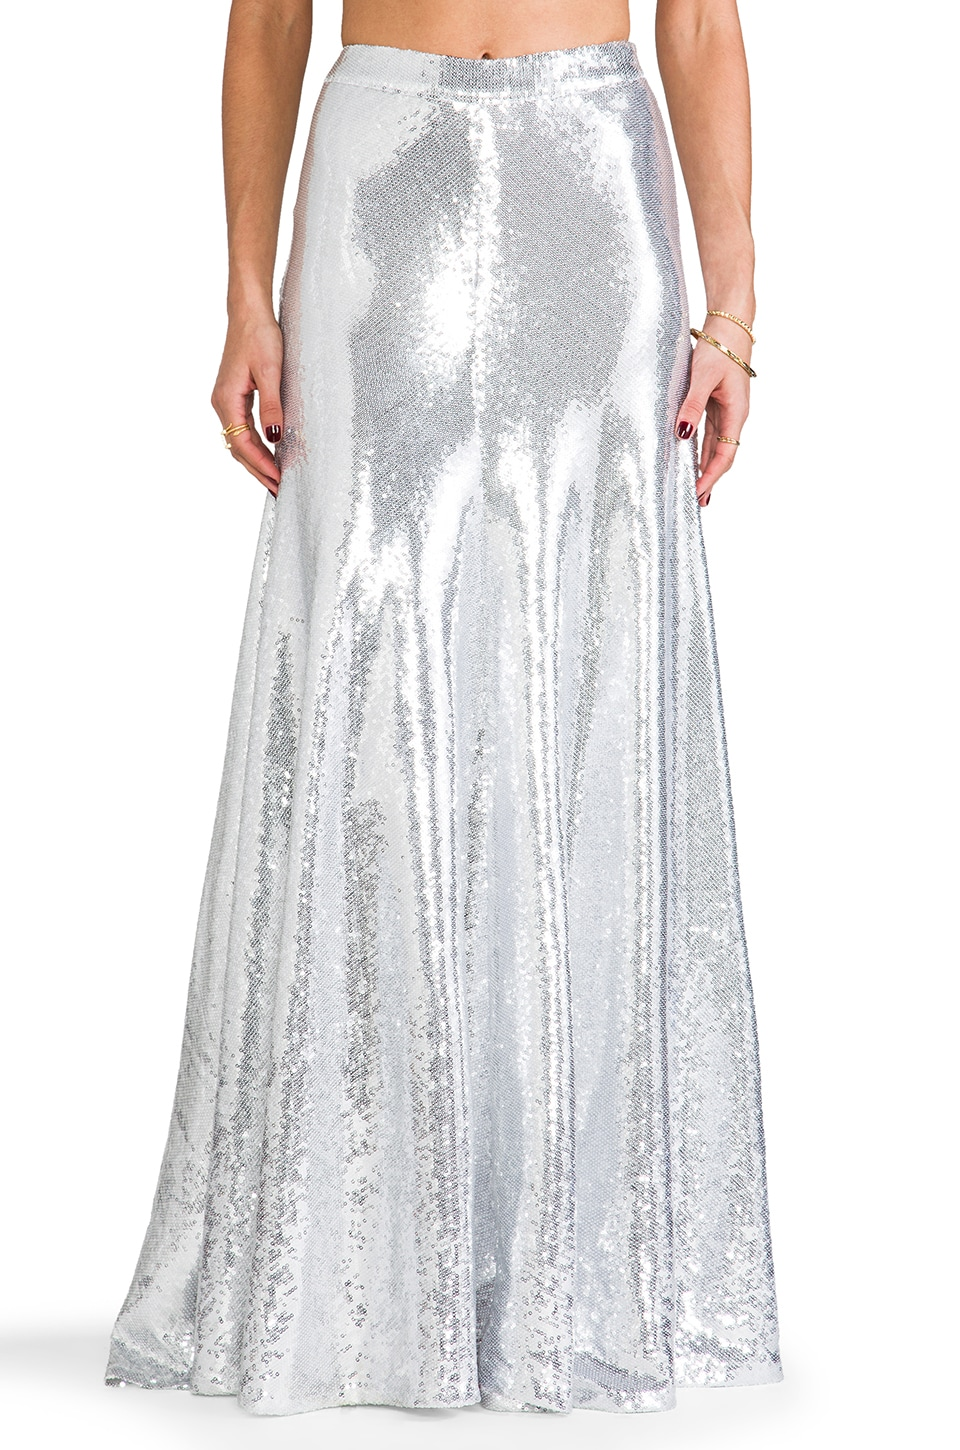 Wildfox Couture Cecilia Sequin Maxi Skirt in Silver | REVOLVE